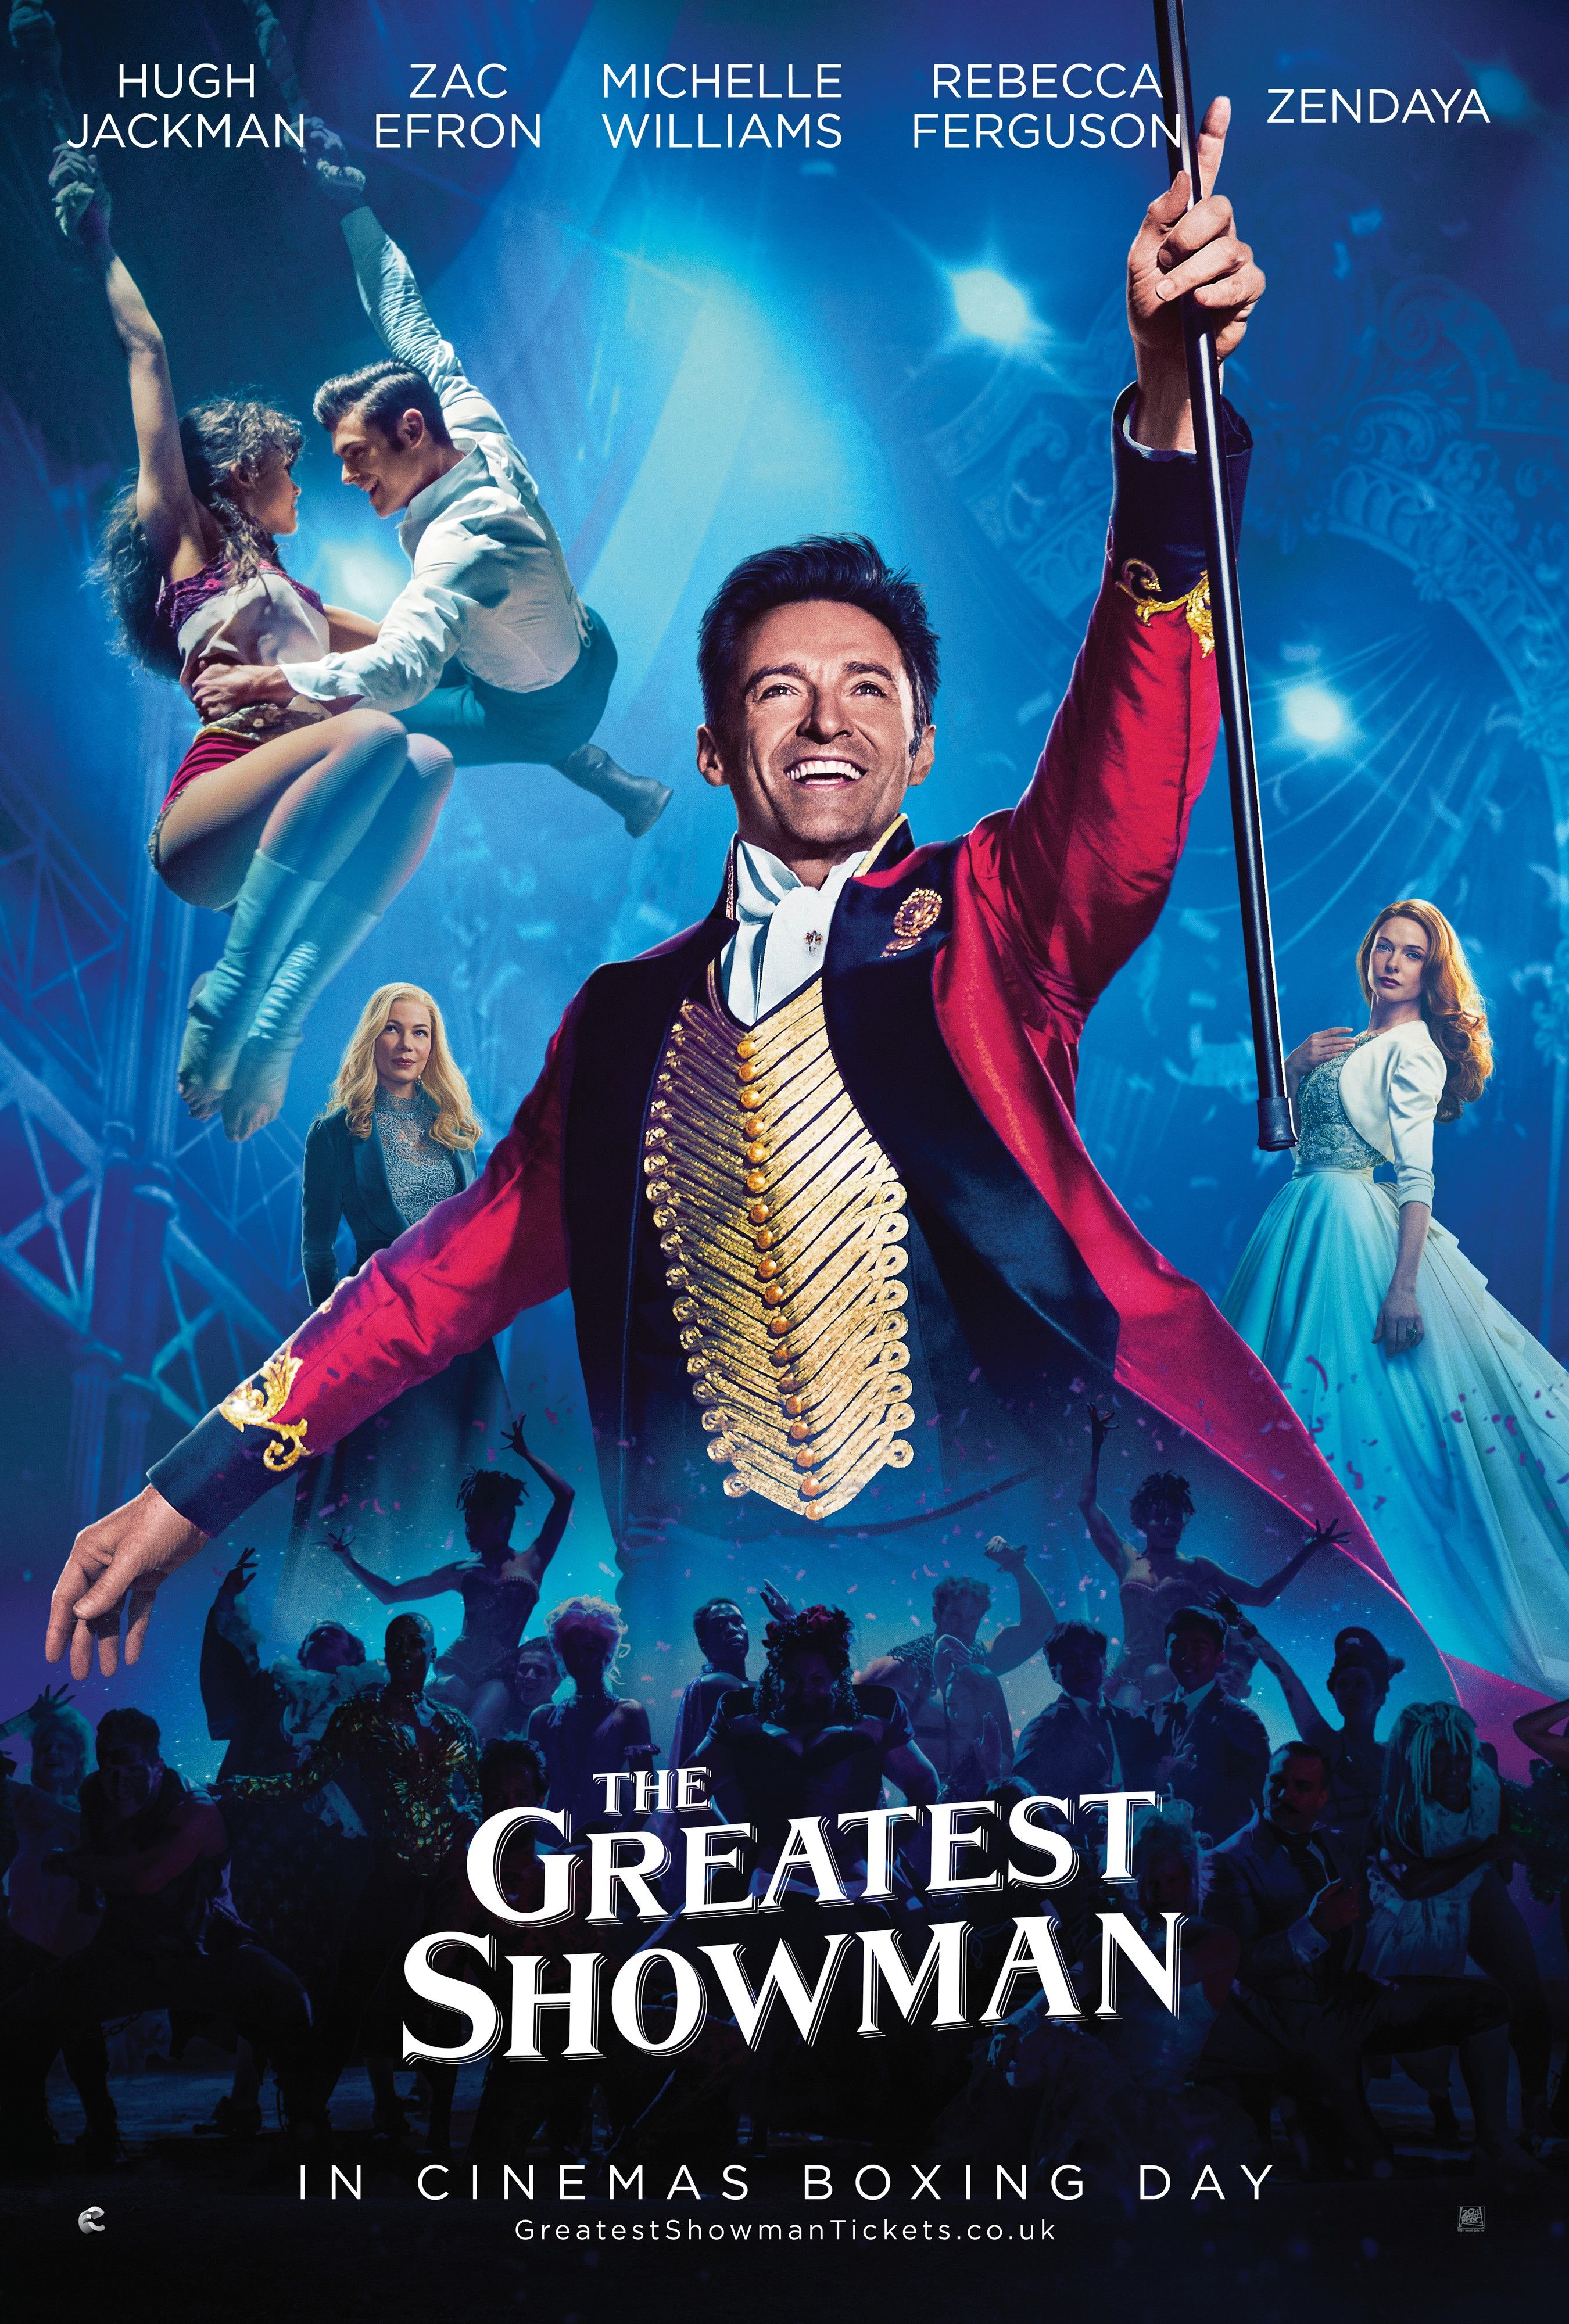 Listen To The Full Soundtrack Of The Greatest Showman